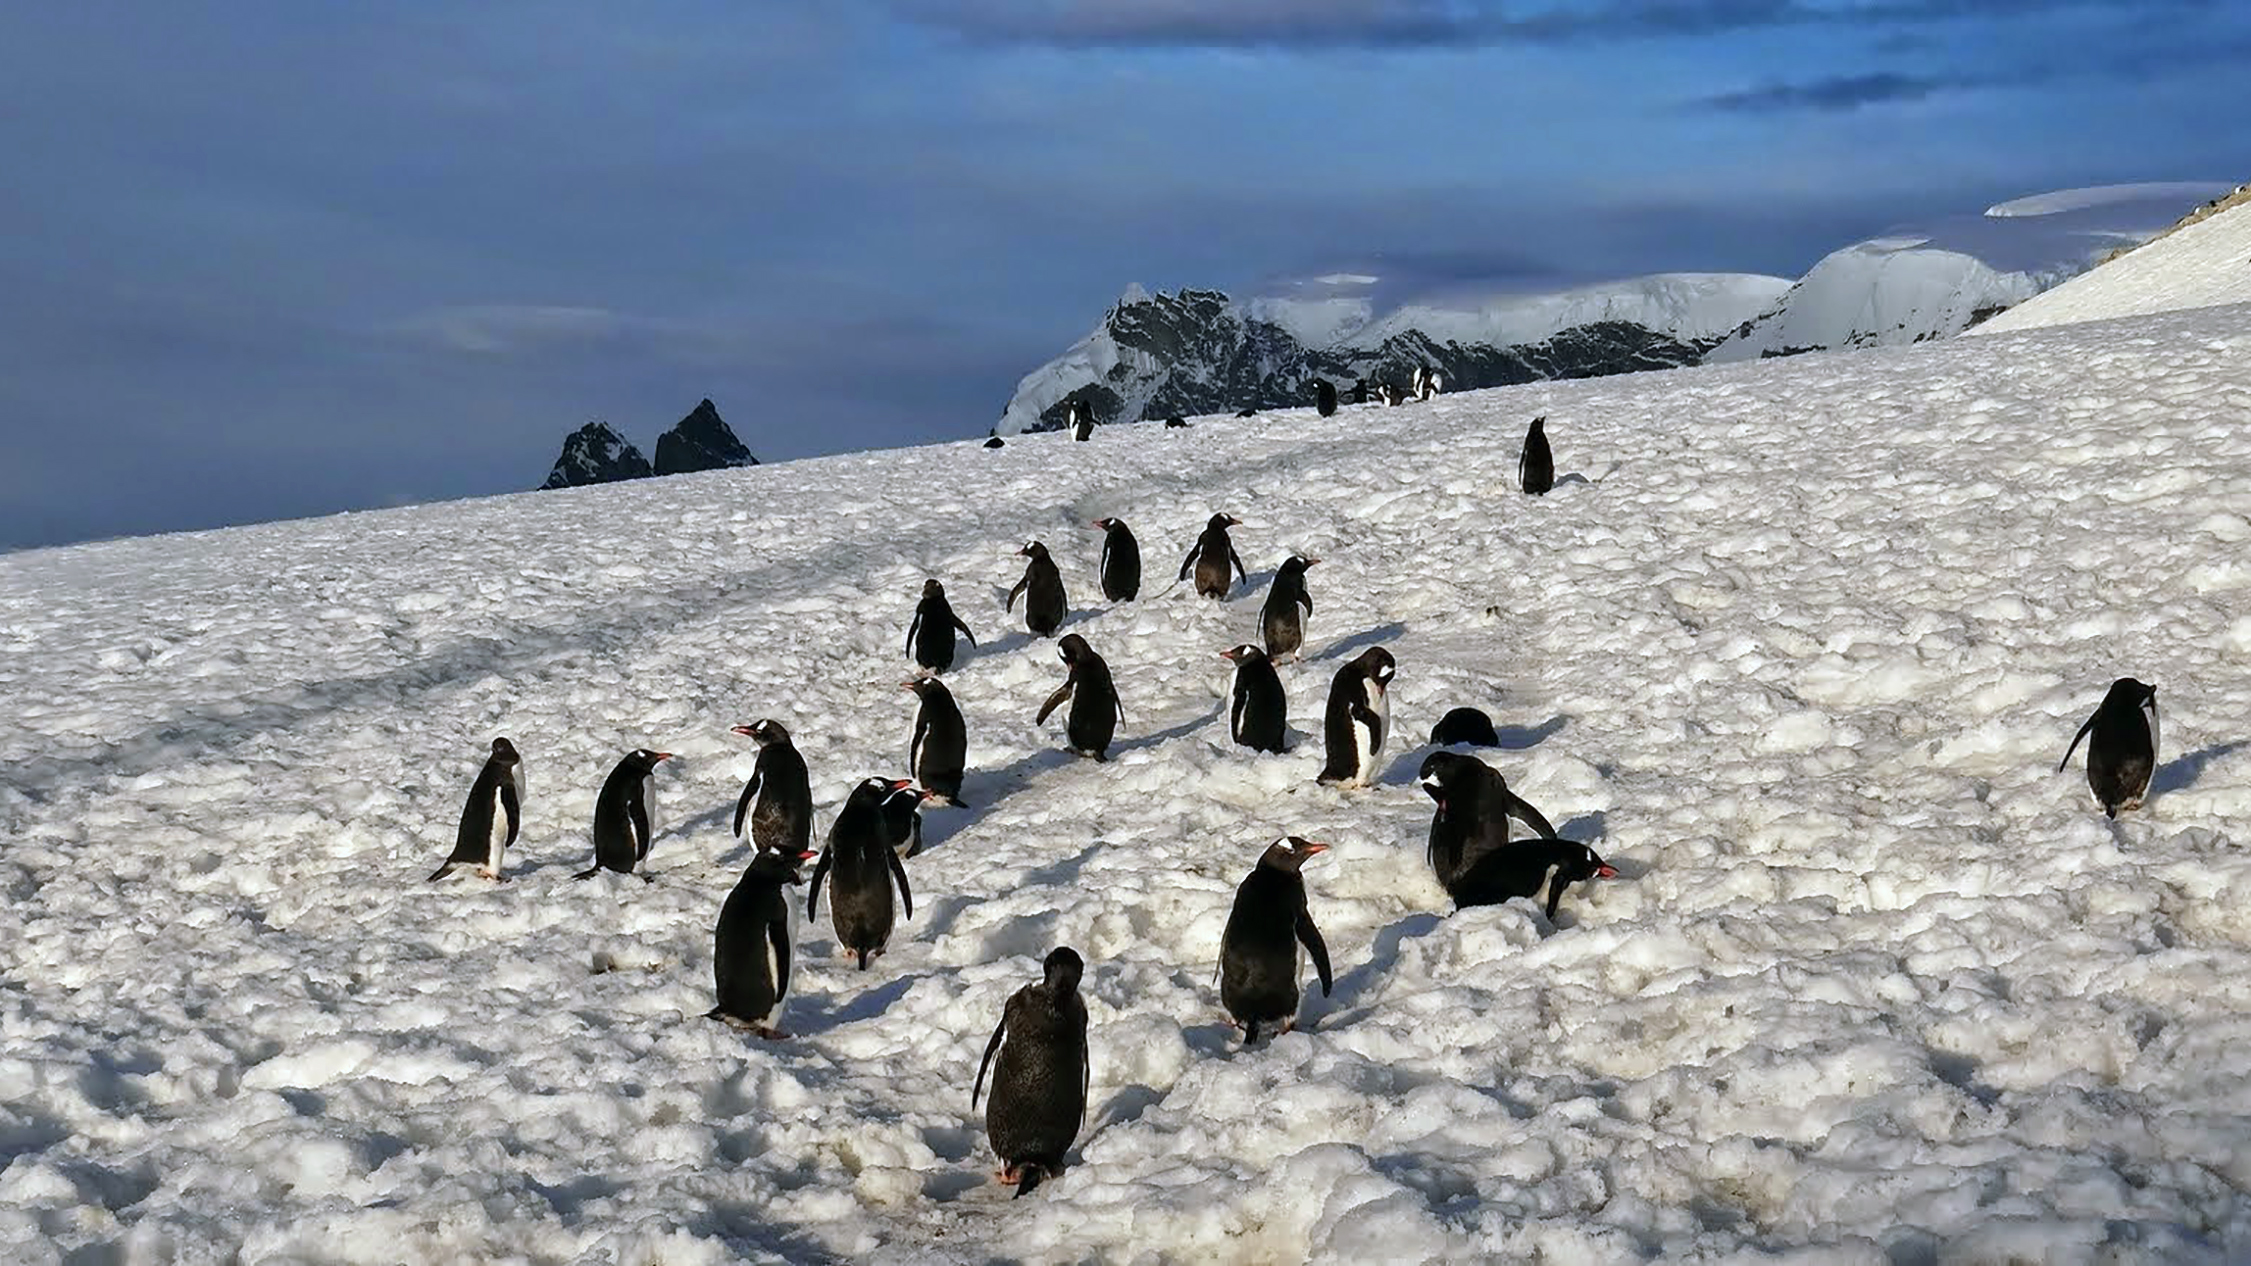 During an excursion to Danco Island, we ran into a colony of gentoo penguins scurrying about in the snow.